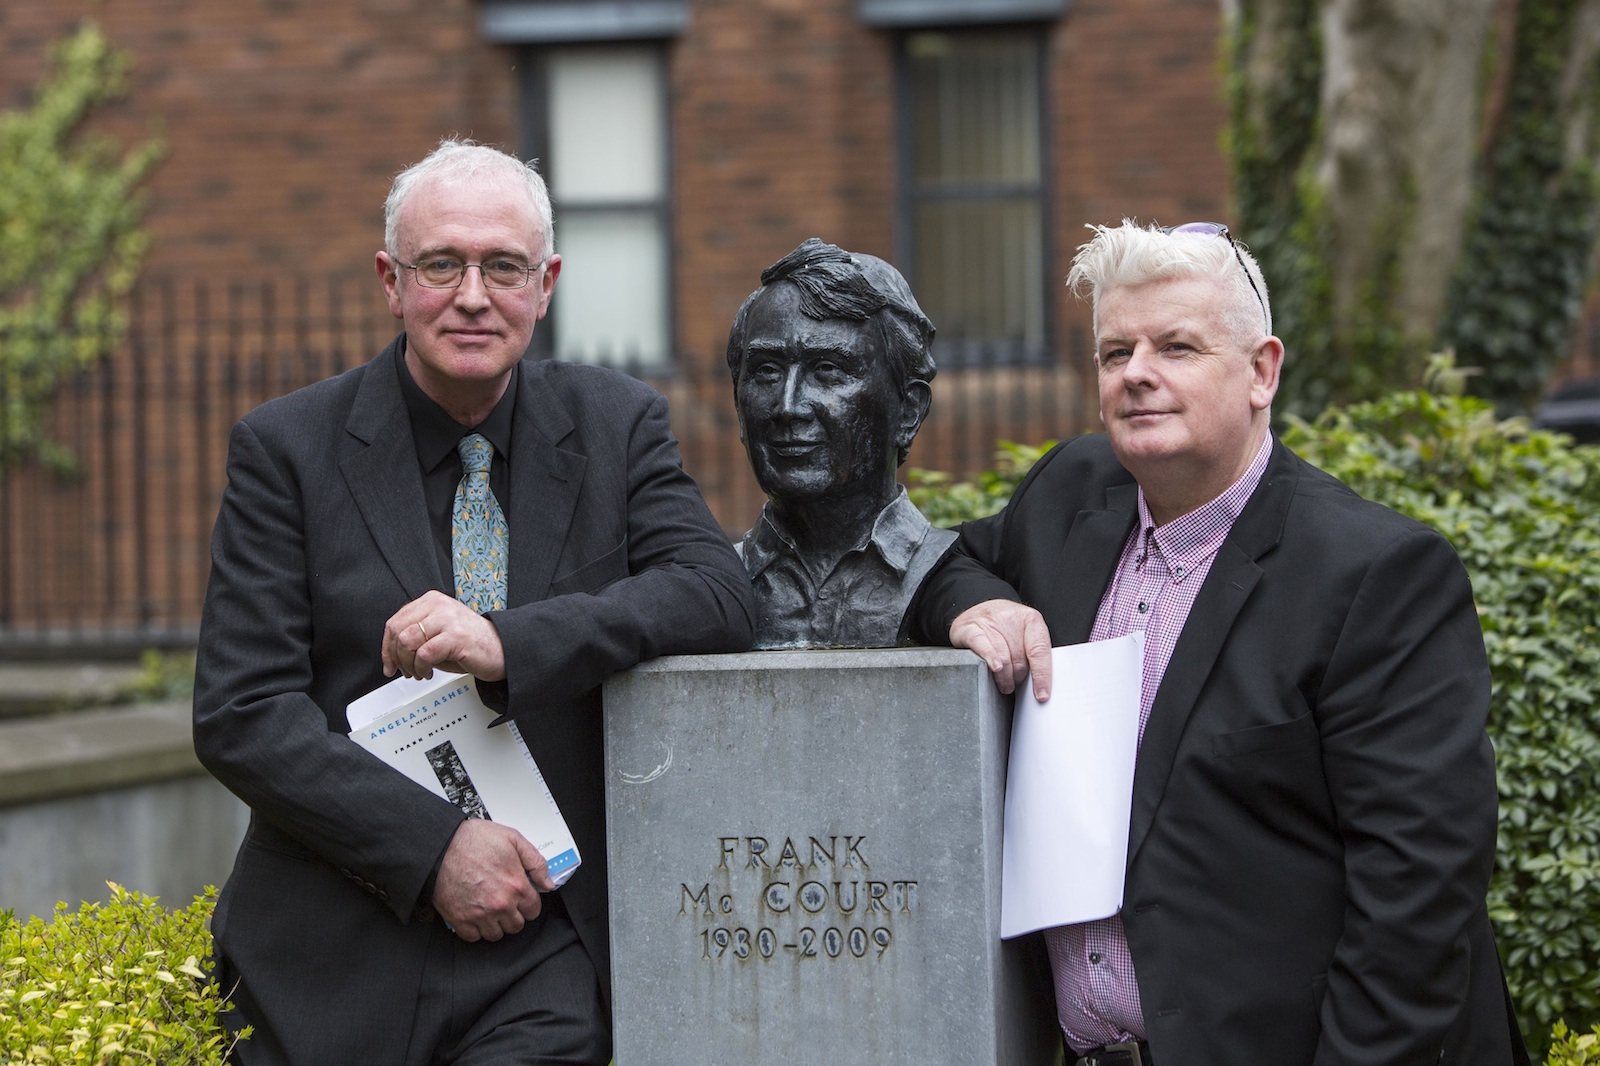 Frank McCourt Summer School